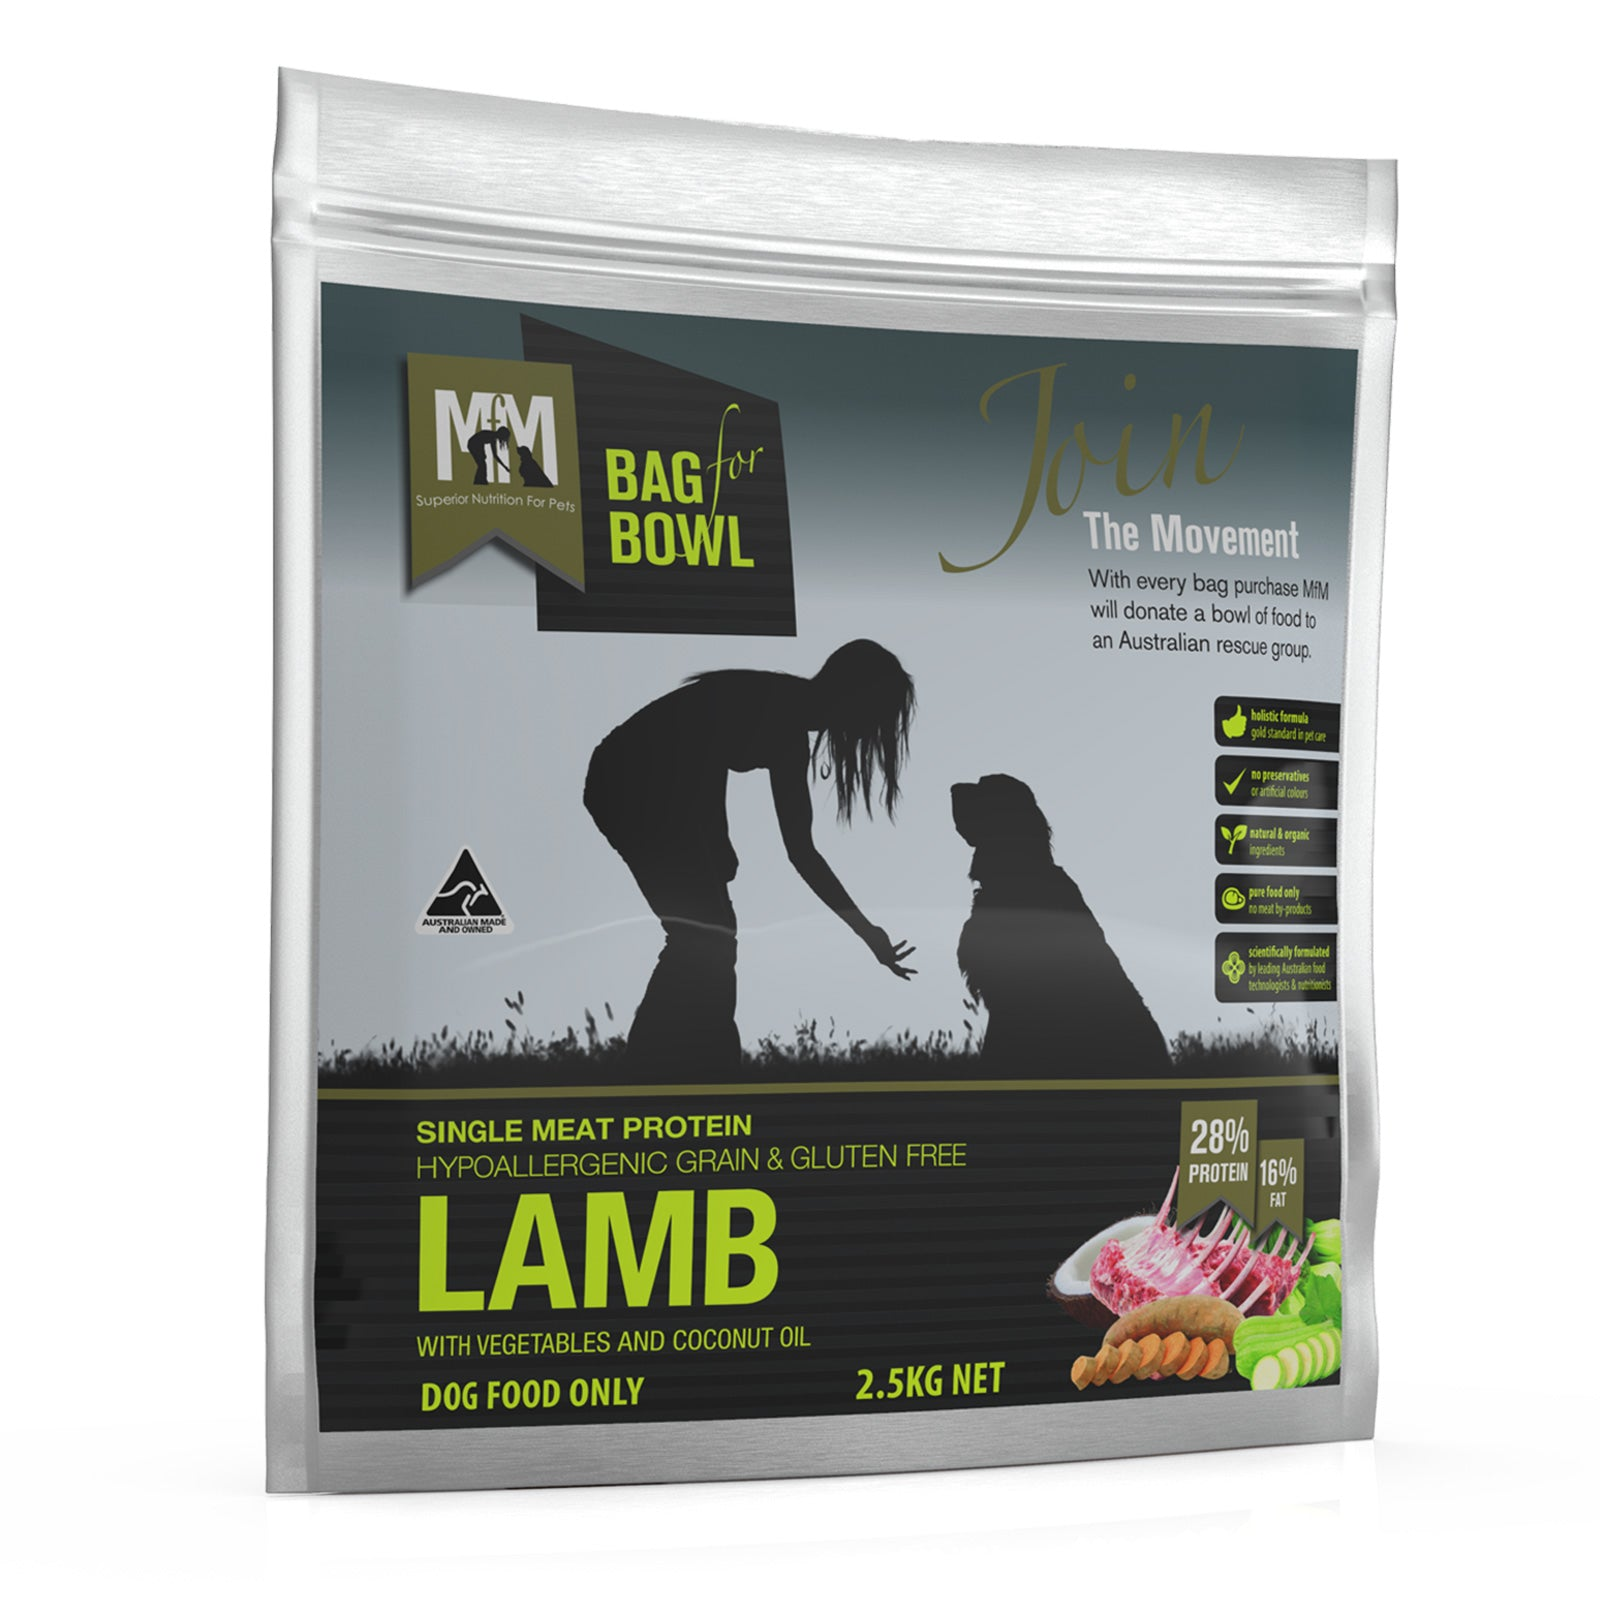 Meals for Mutts Single Protein Lamb Gluten Free Grain Free Dog Food